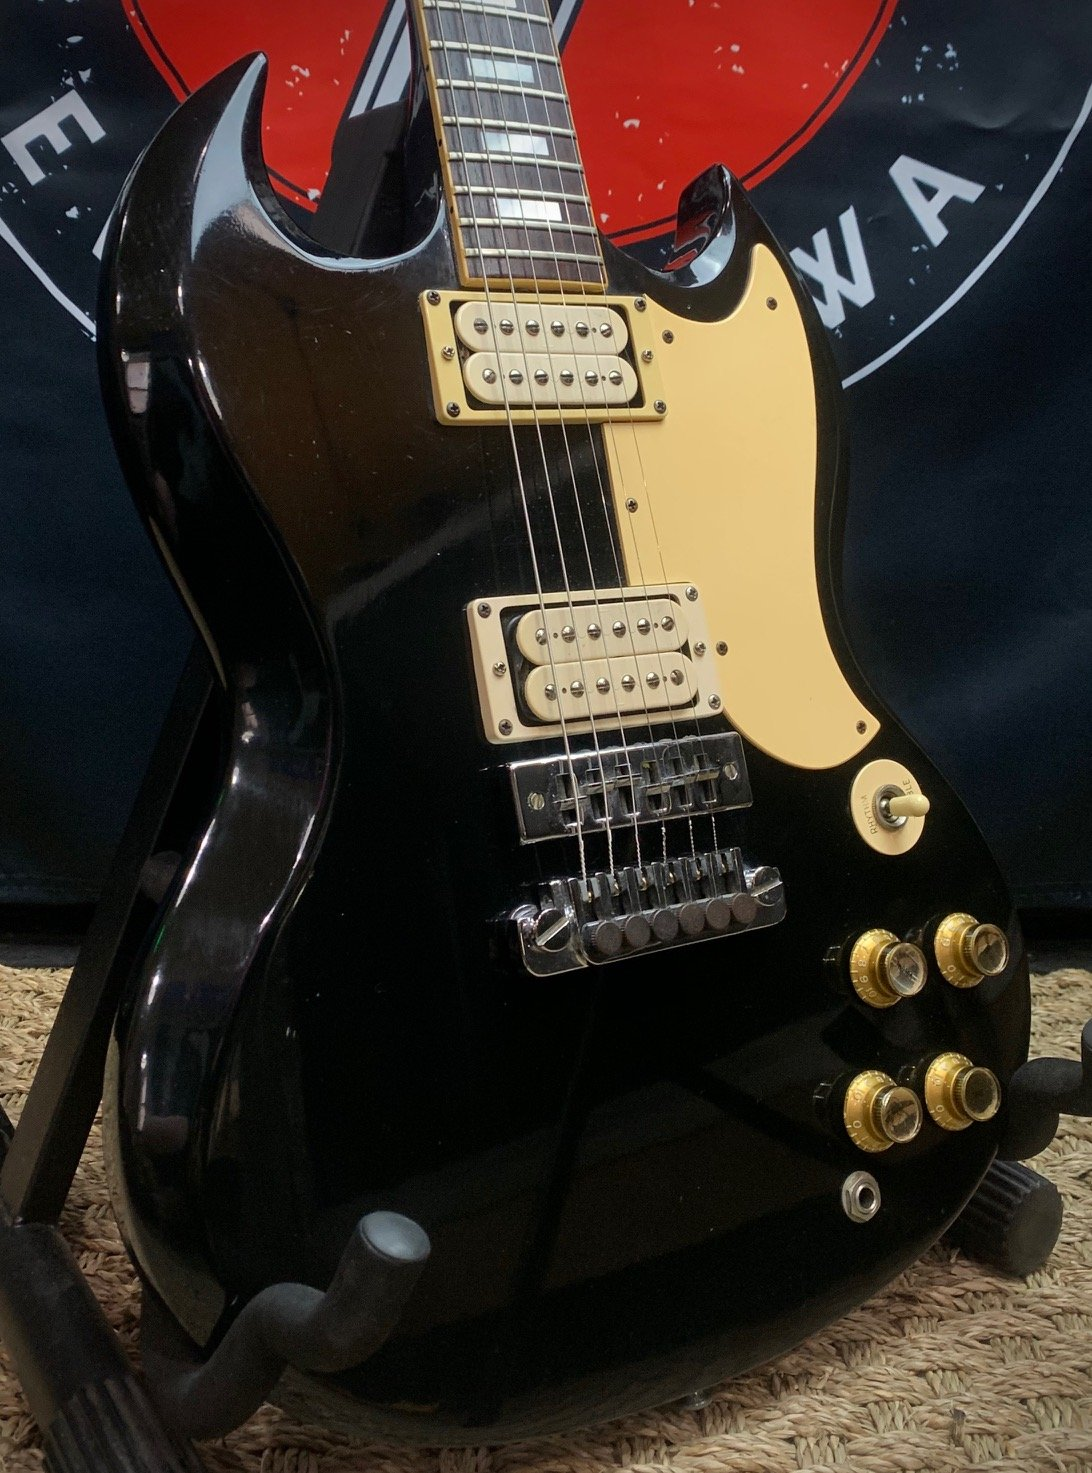 1979 Gibson SG Exclusive w/ohc and Warranty Card